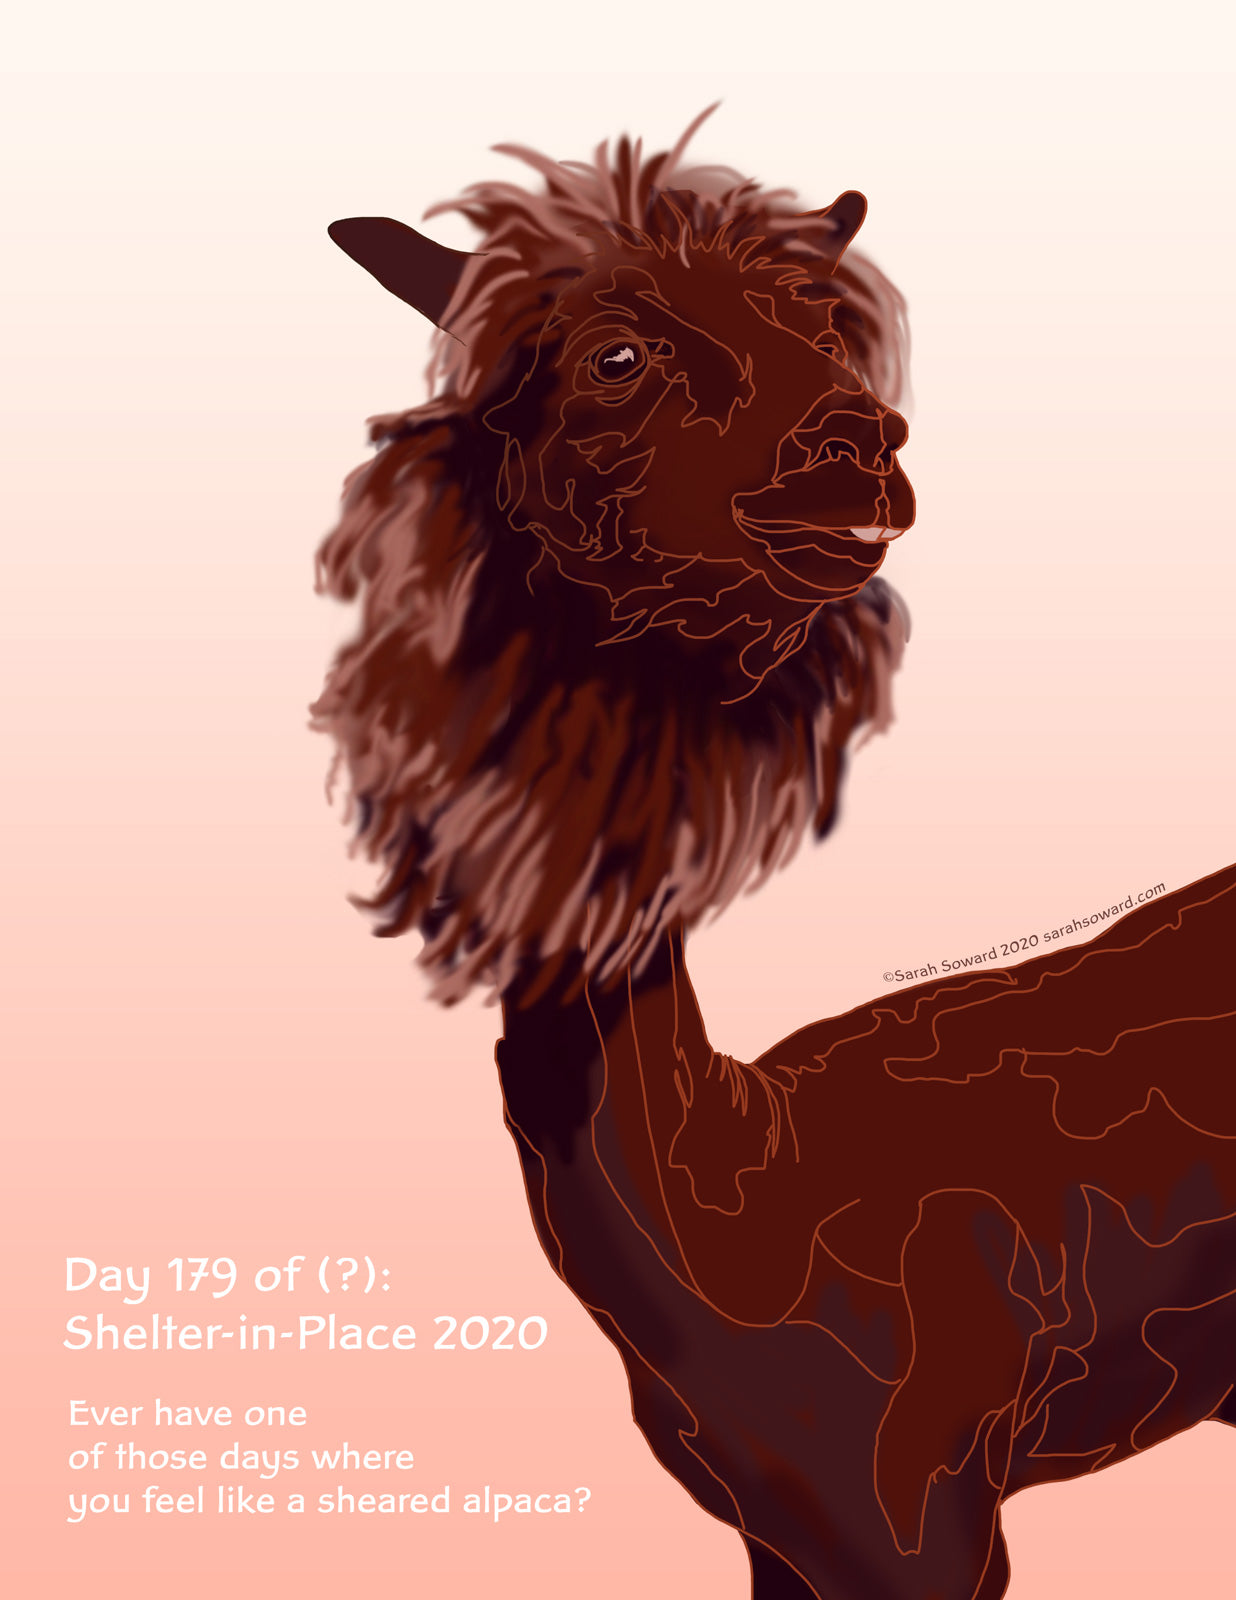 Digital painting os a sienna-colored alpaca looking defiant. It is freshly shorn, with only fluffy alpaca wool left around its face creating a mane of sorts. The background is a gentle pink gradient. The text on the image reads  Ever have one of those days where you feel like a sheared alpaca?